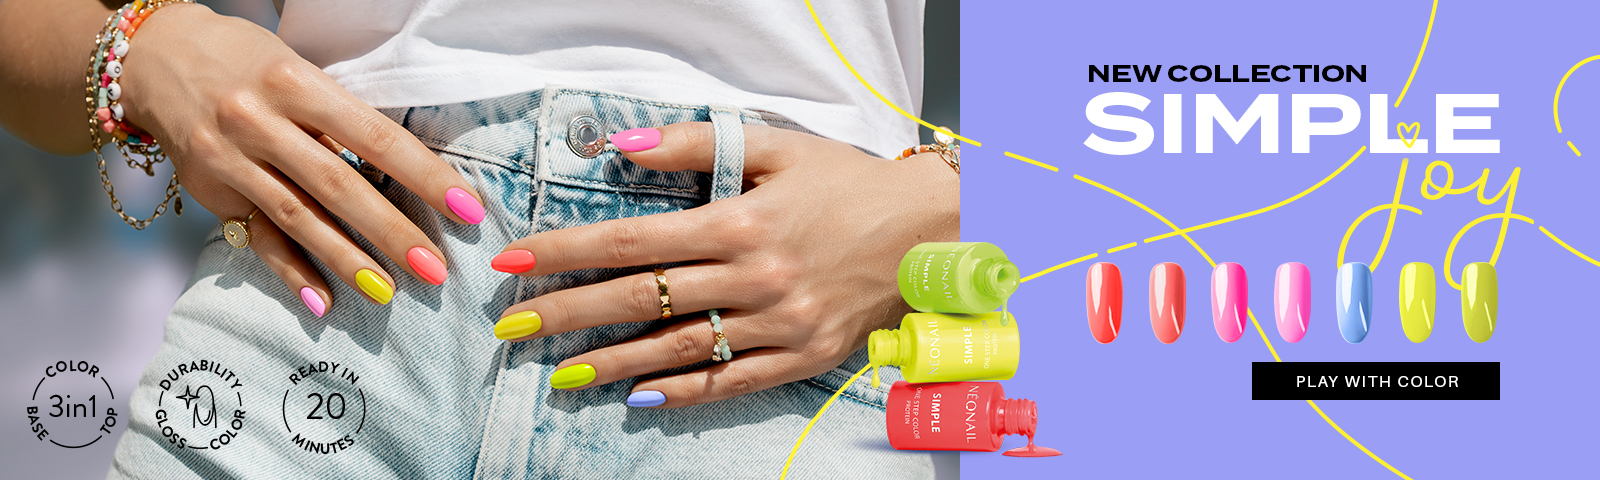 Simple Joy Discover 7 summer colors SIMPLE 3-in-1 UV gel polishes!  LETS GO!